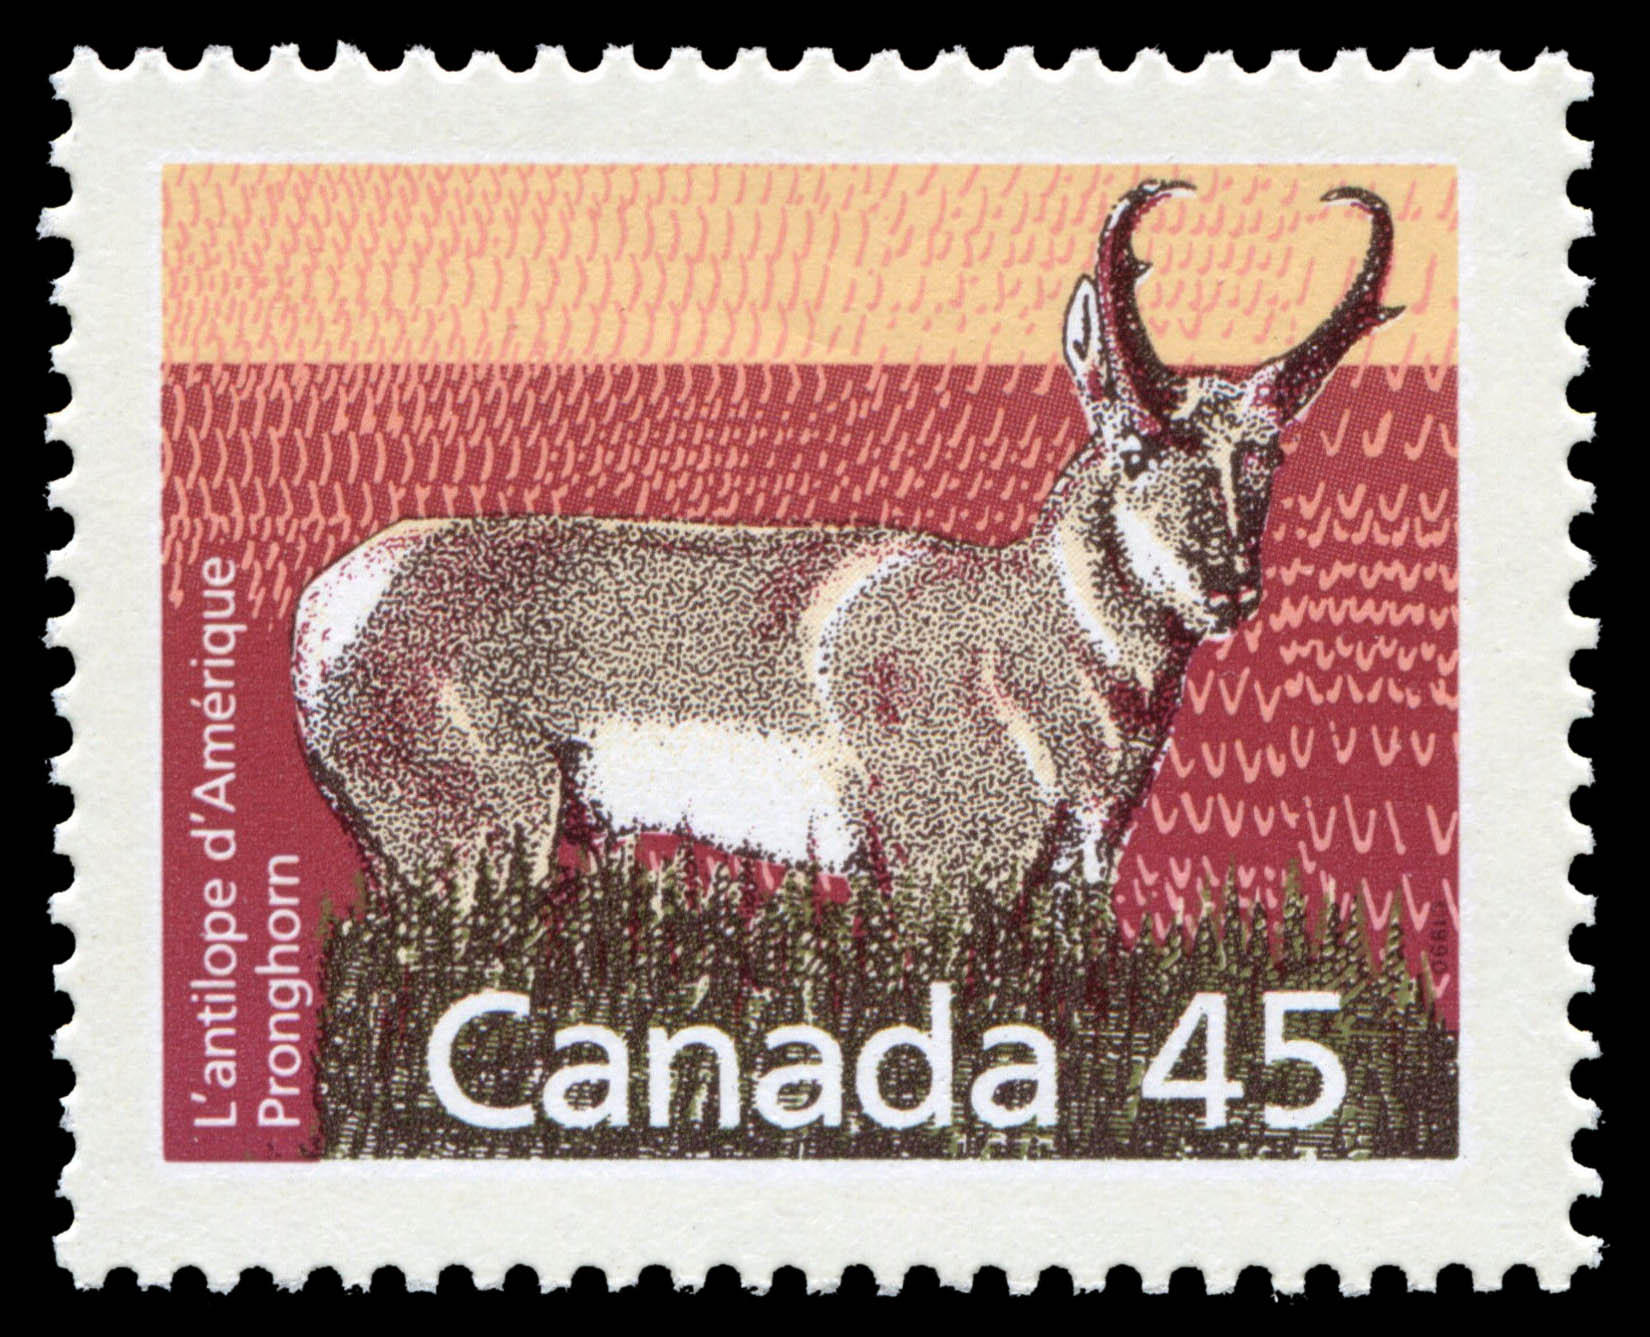 Pronghorn Canada Postage Stamp